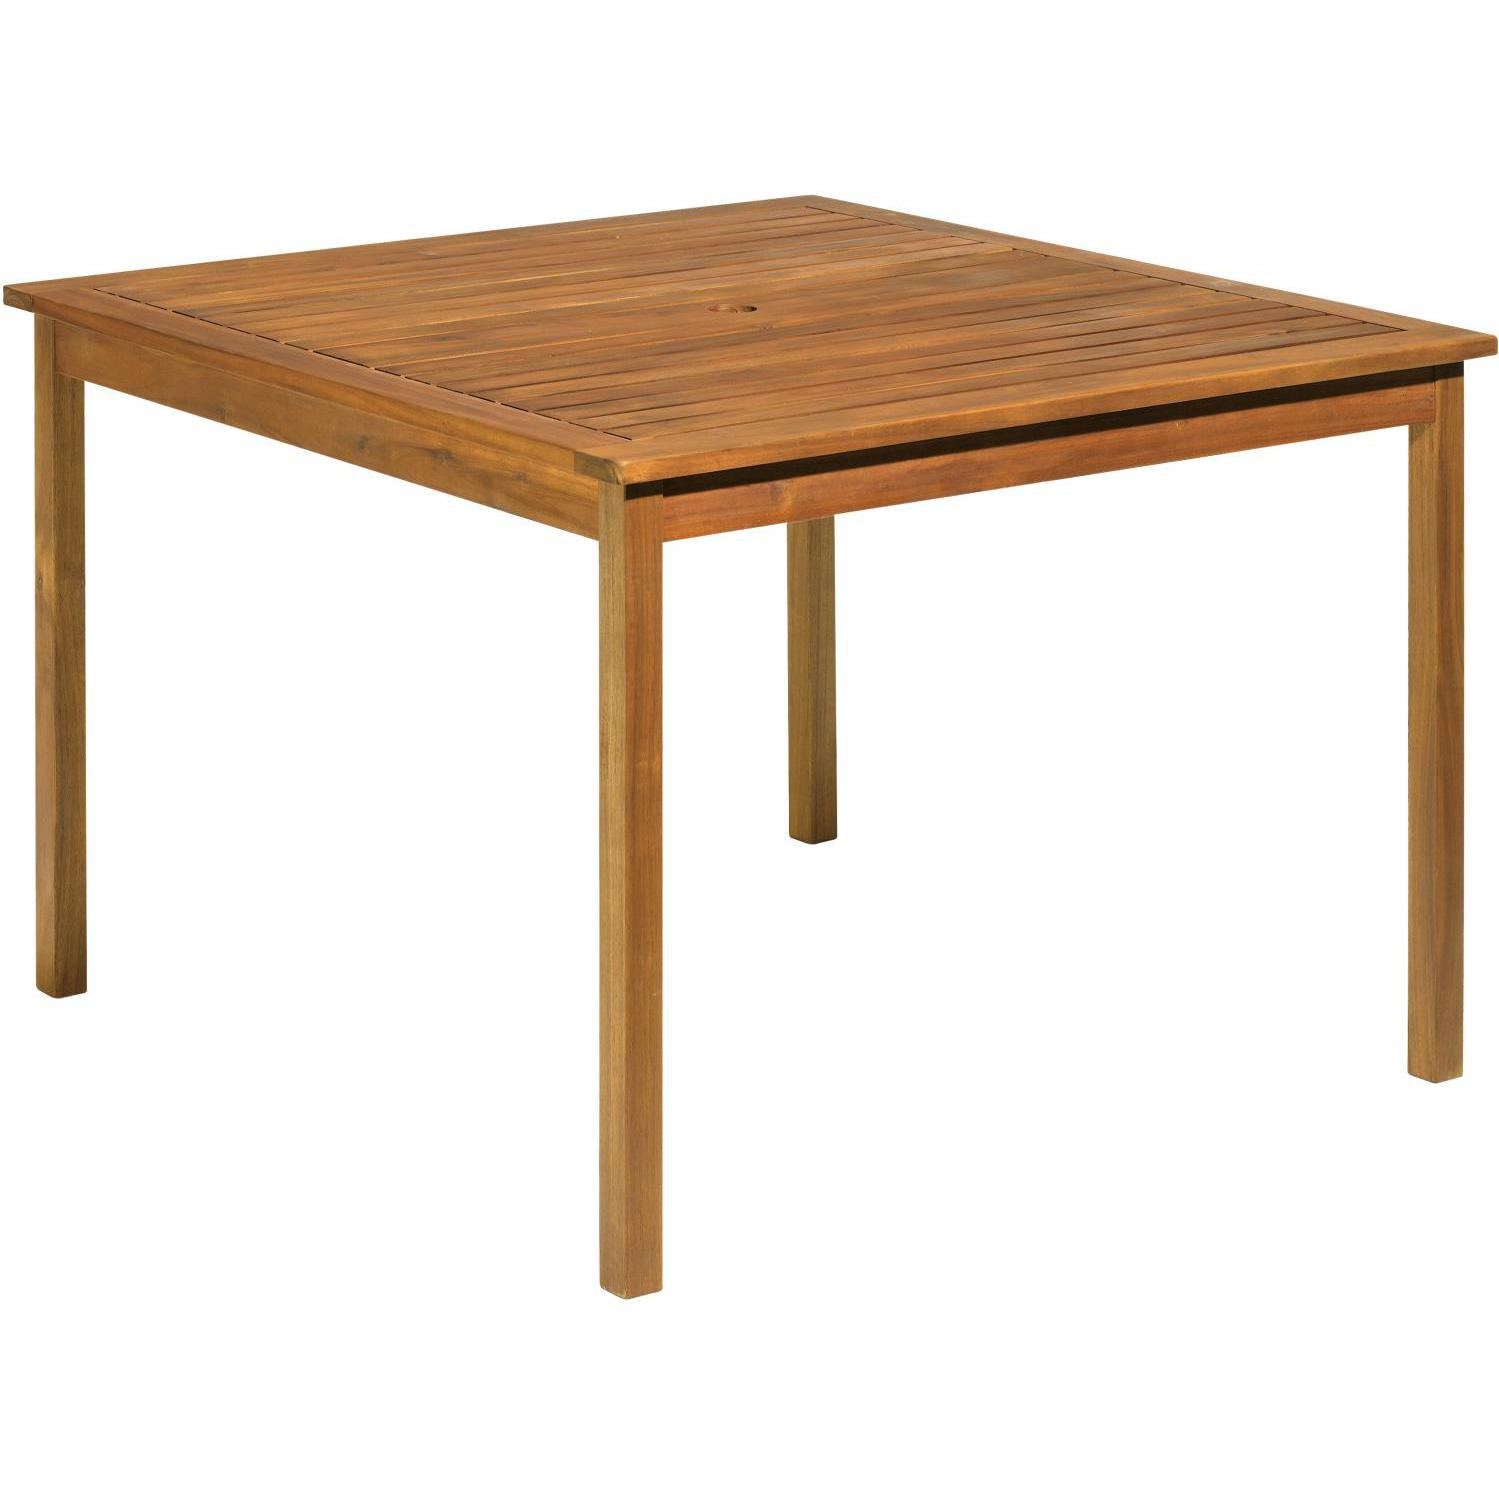 Picture of Oxford Garden Capri Wood Patio Dining Table - Brown Umber